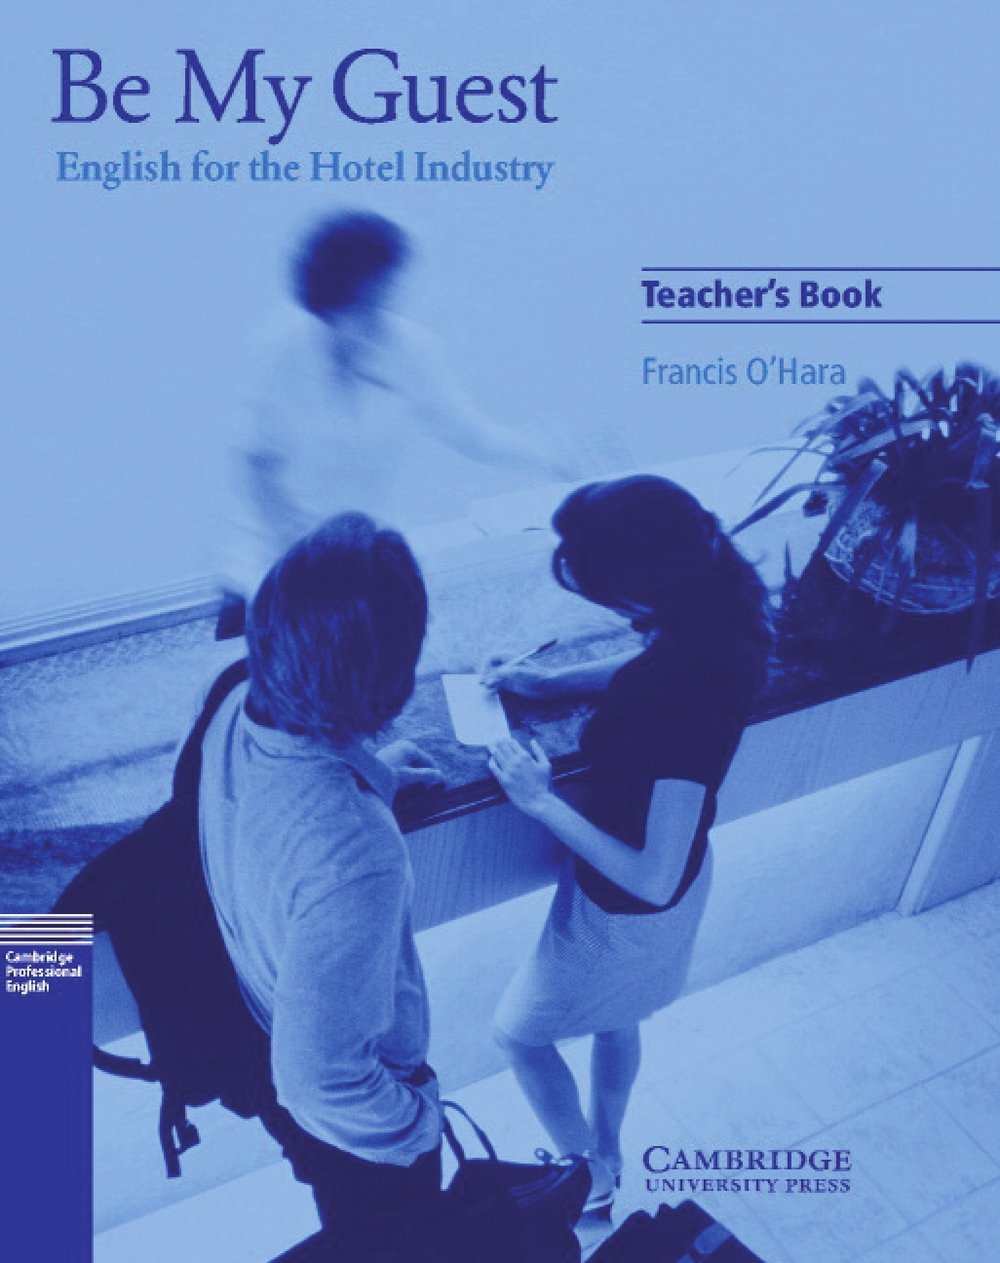 Be My Guest: English for the Hotel Industry. Teacher's Book